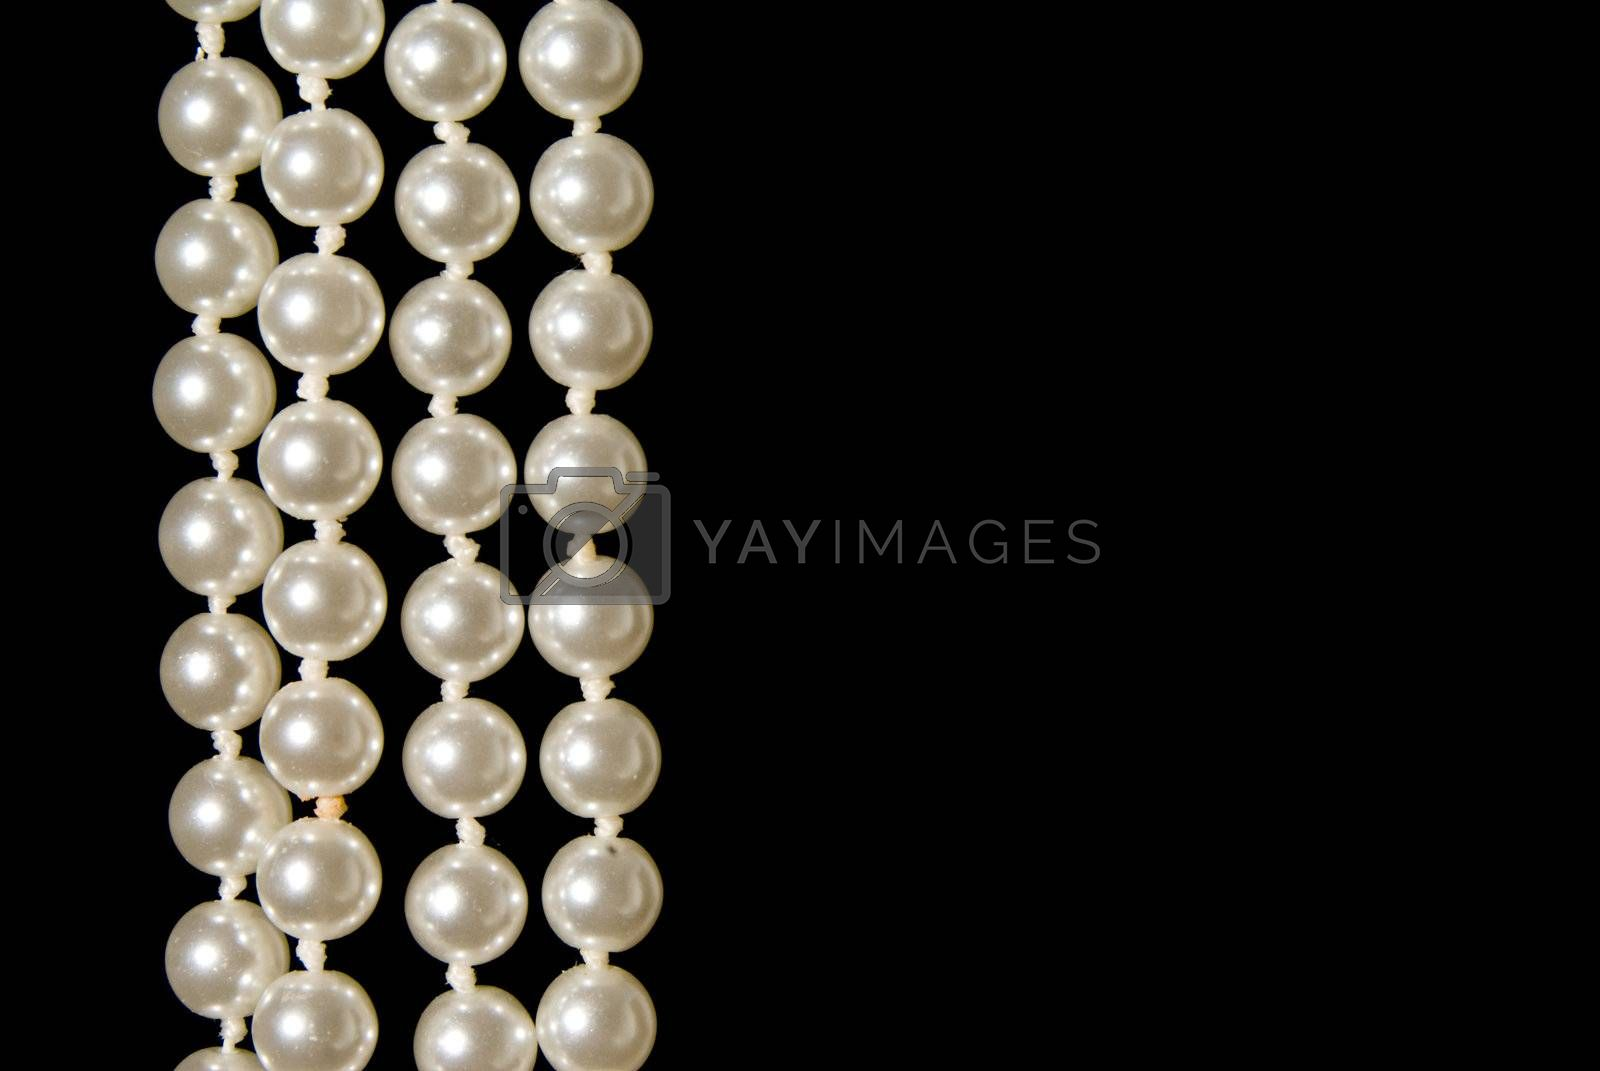 A hanging string of beautiful oyster pearls.